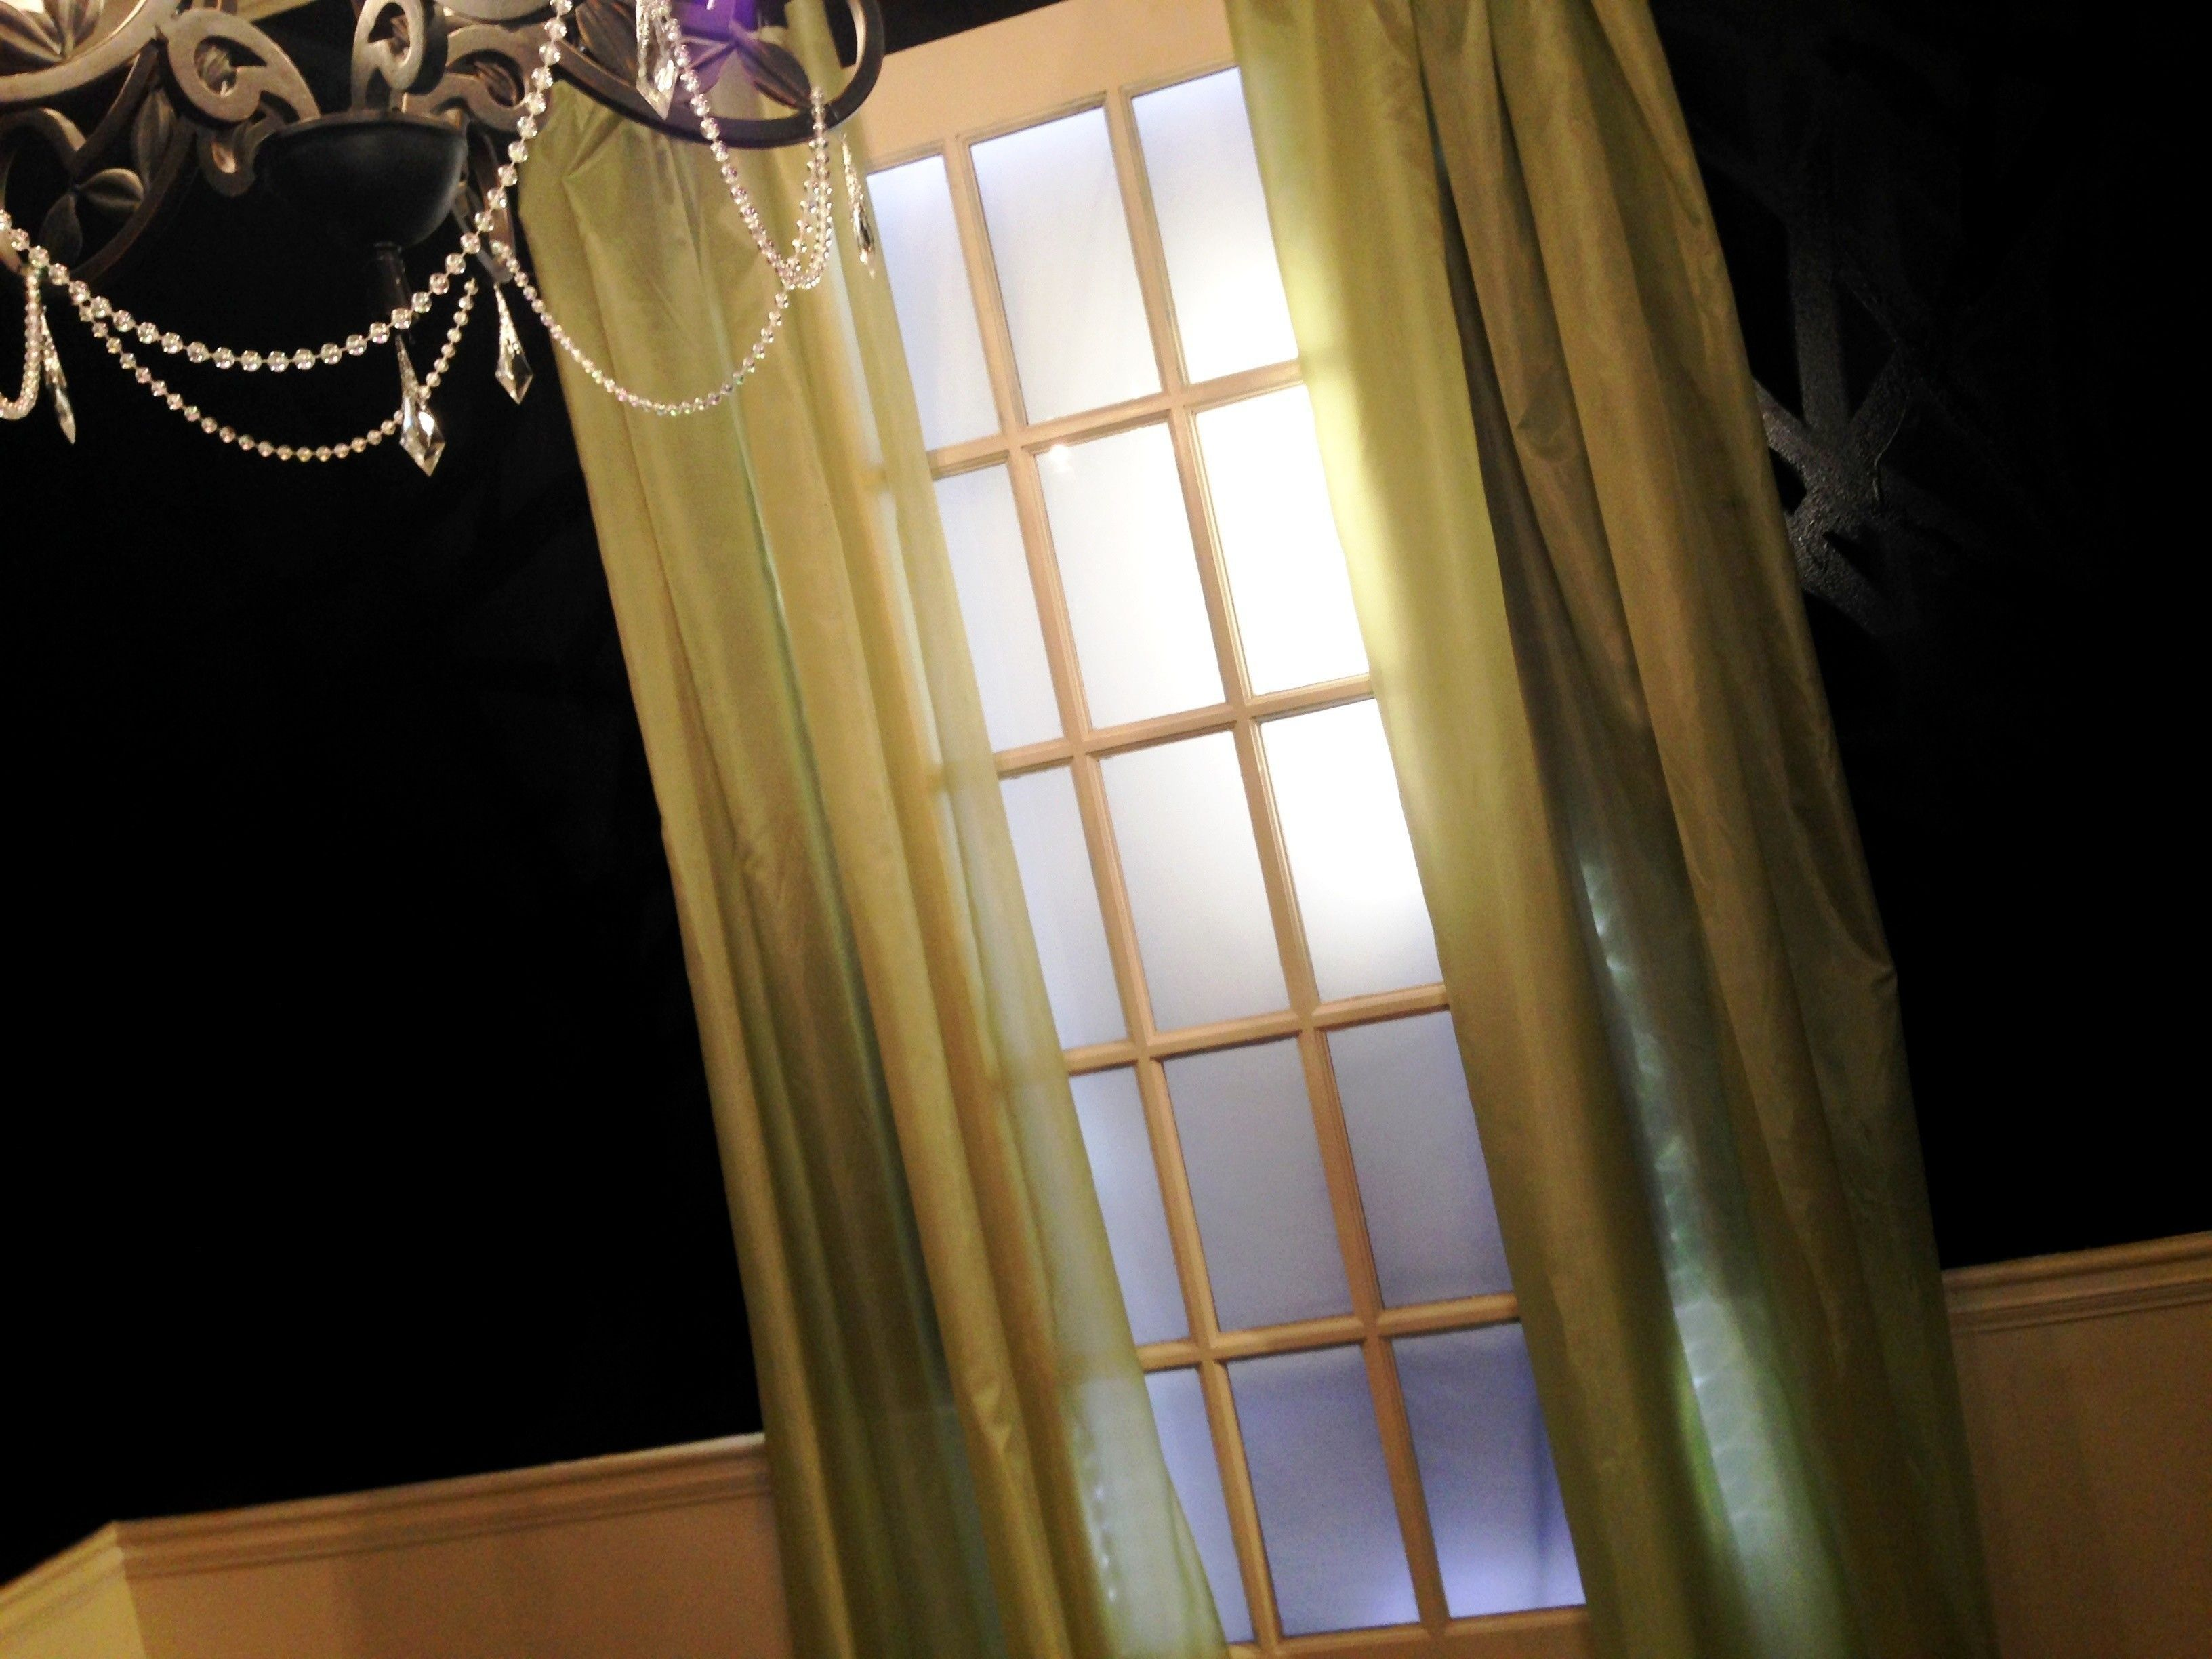 Fake Window with Artificial Sunlight u2022 Free tutorial with pictures on how to make a hanging in under 120 minutes & Fake Window with Artificial Sunlight | Pinterest | Sunlight Window ...